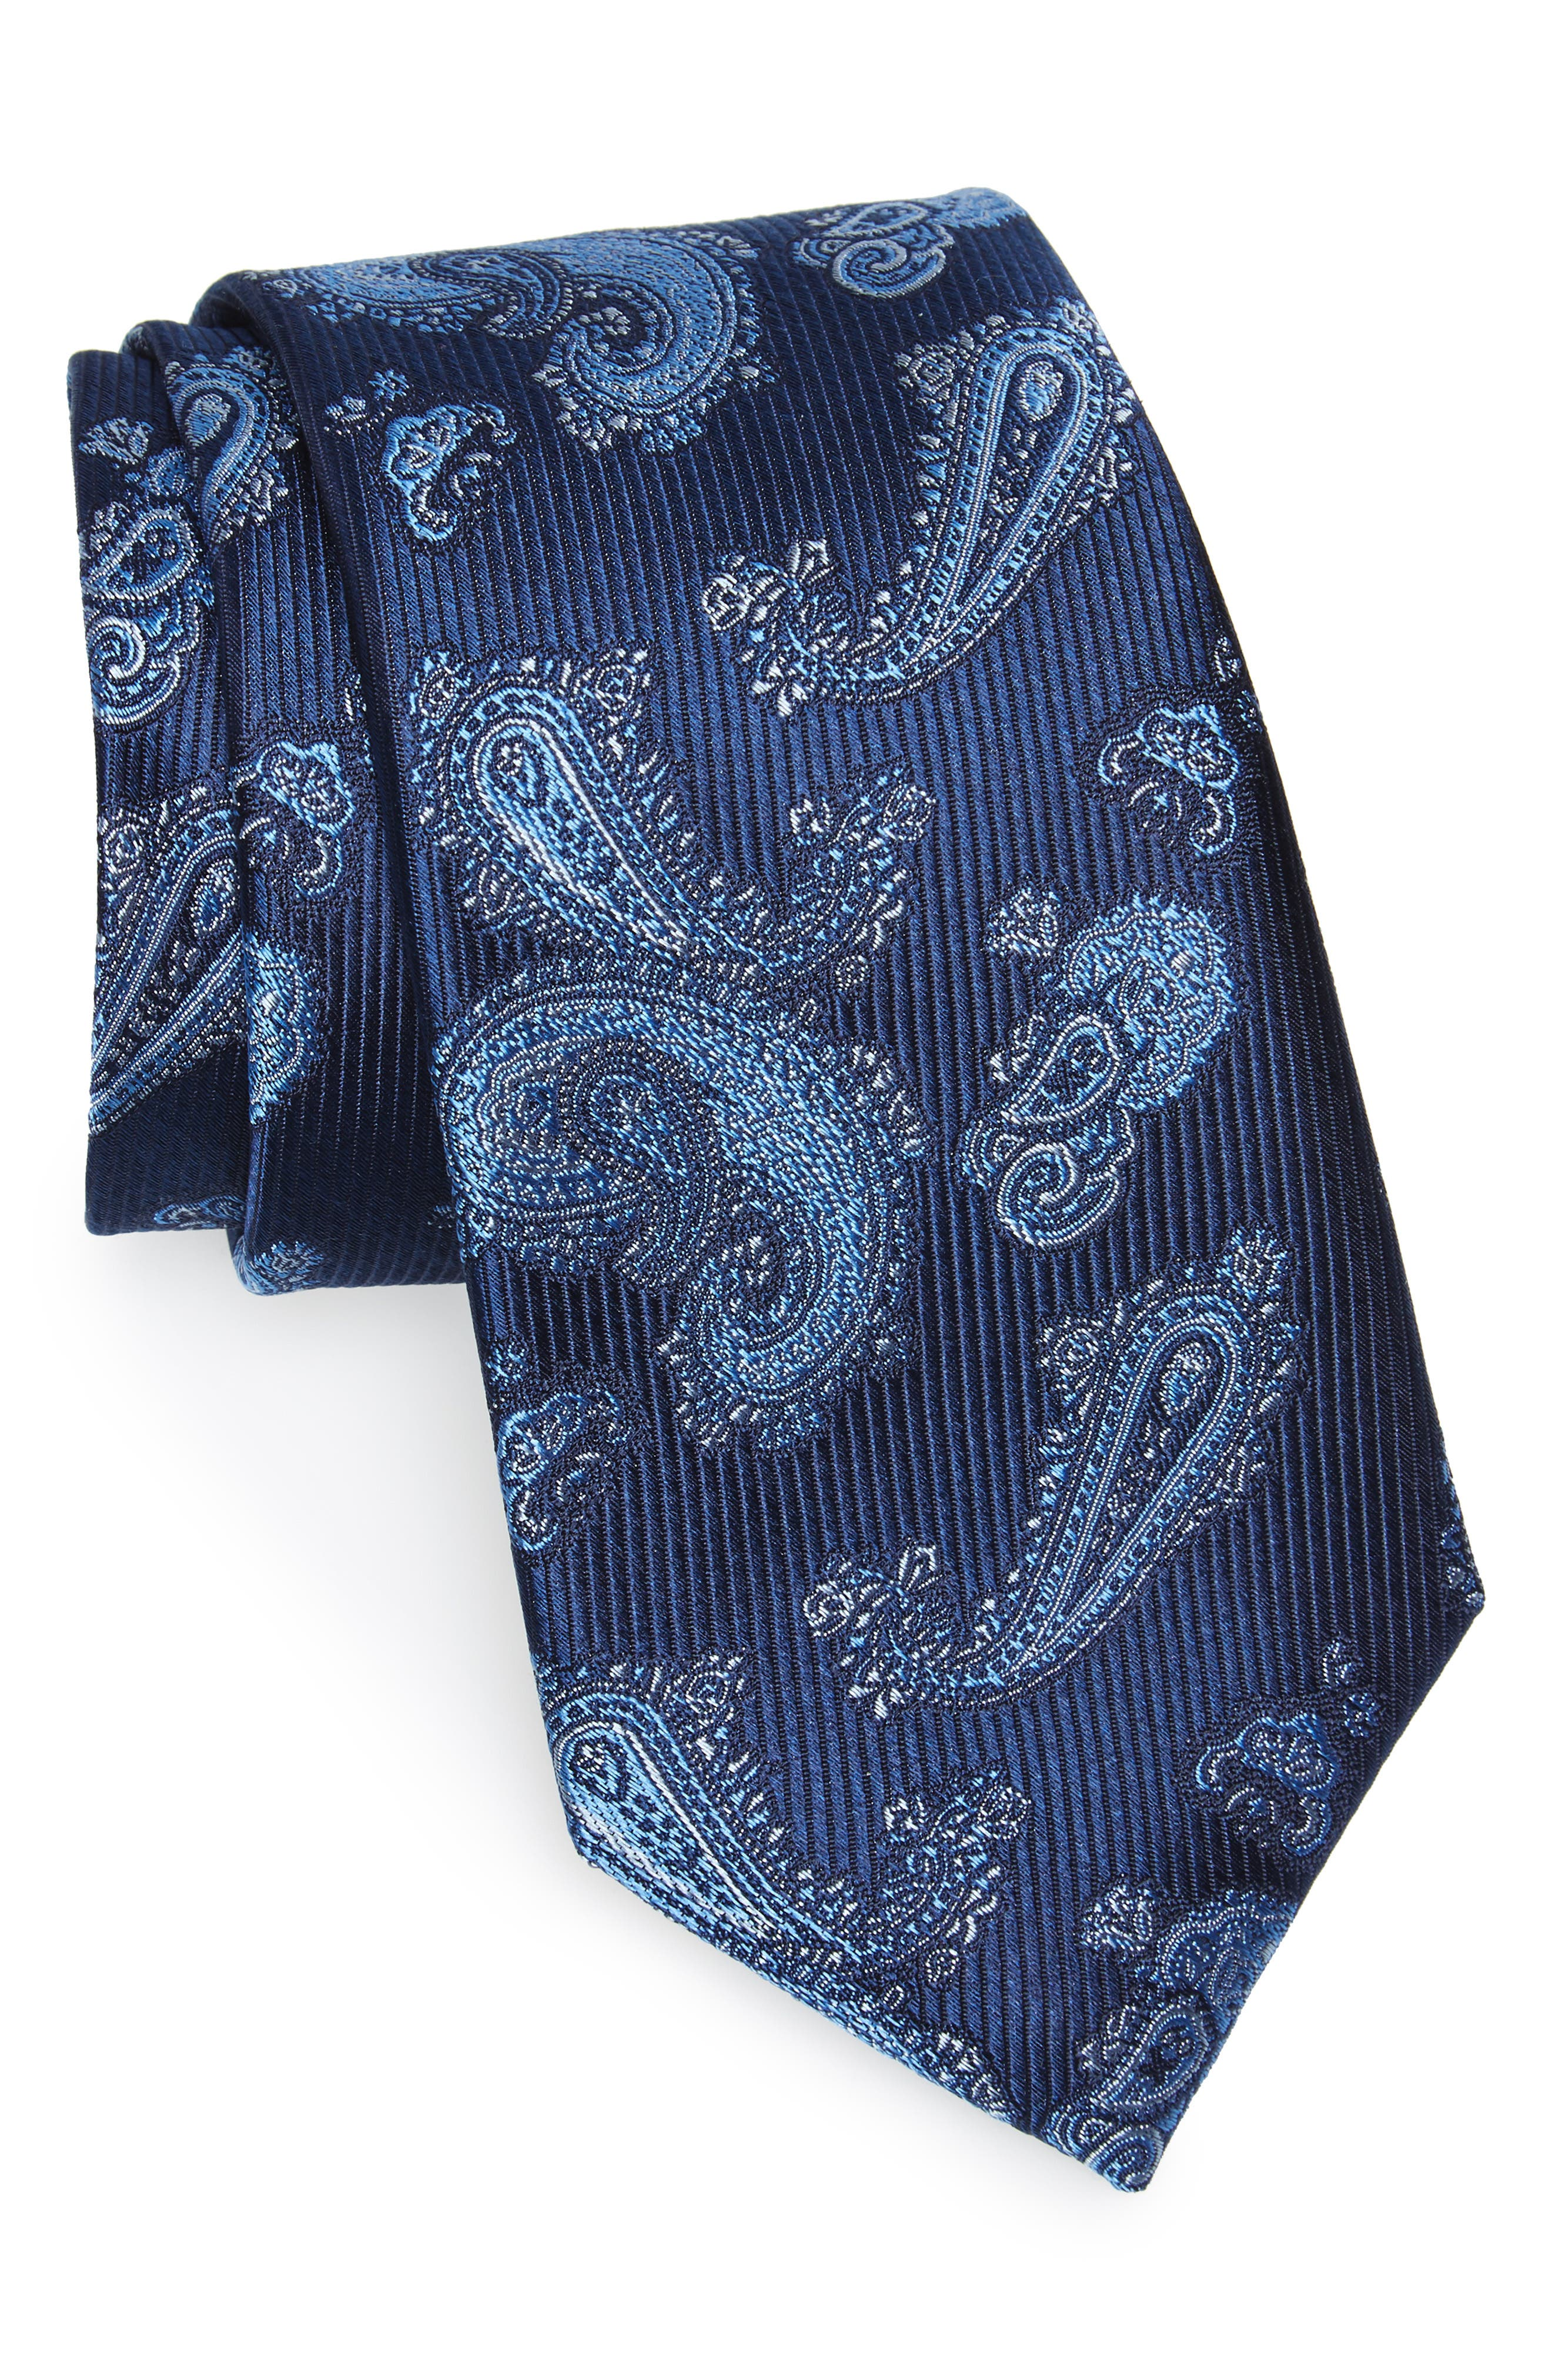 Main Image - Nordstrom Men's Shop Paisley Silk Tie